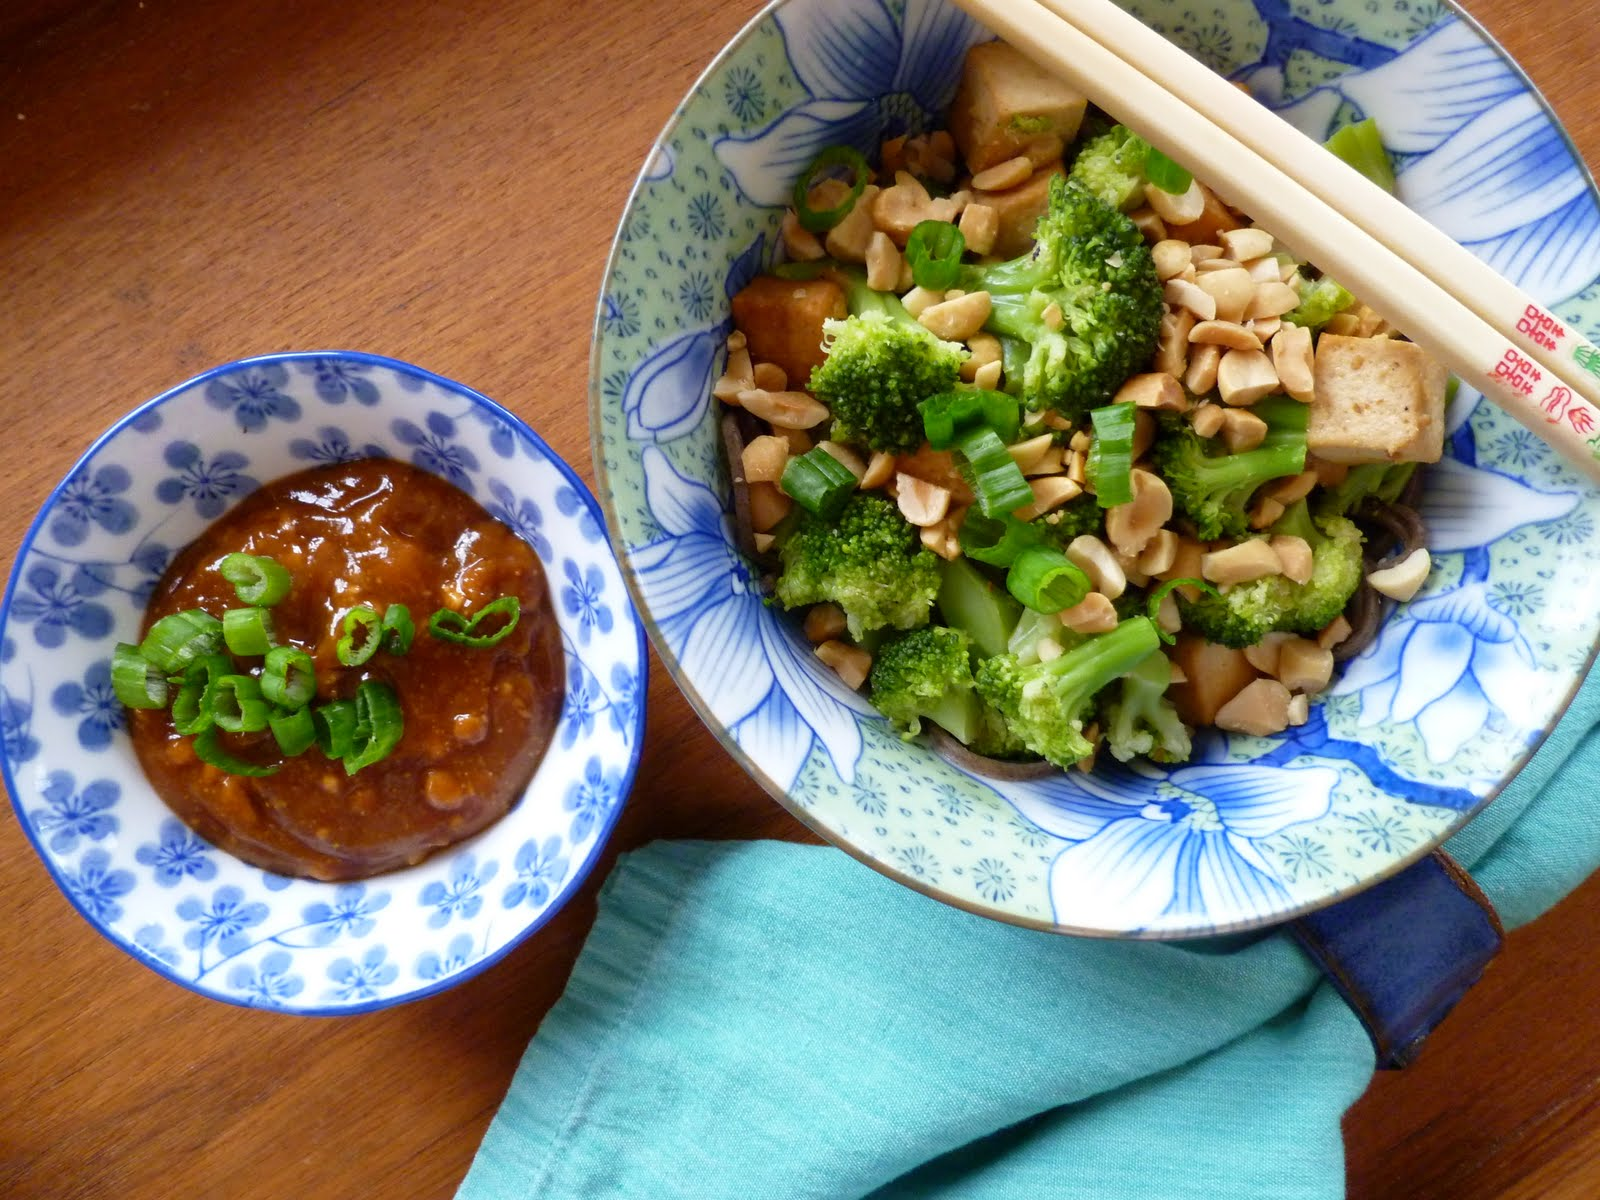 The Fanciful Fig: Soba Noodles with Broccoli and Peanut Sauce